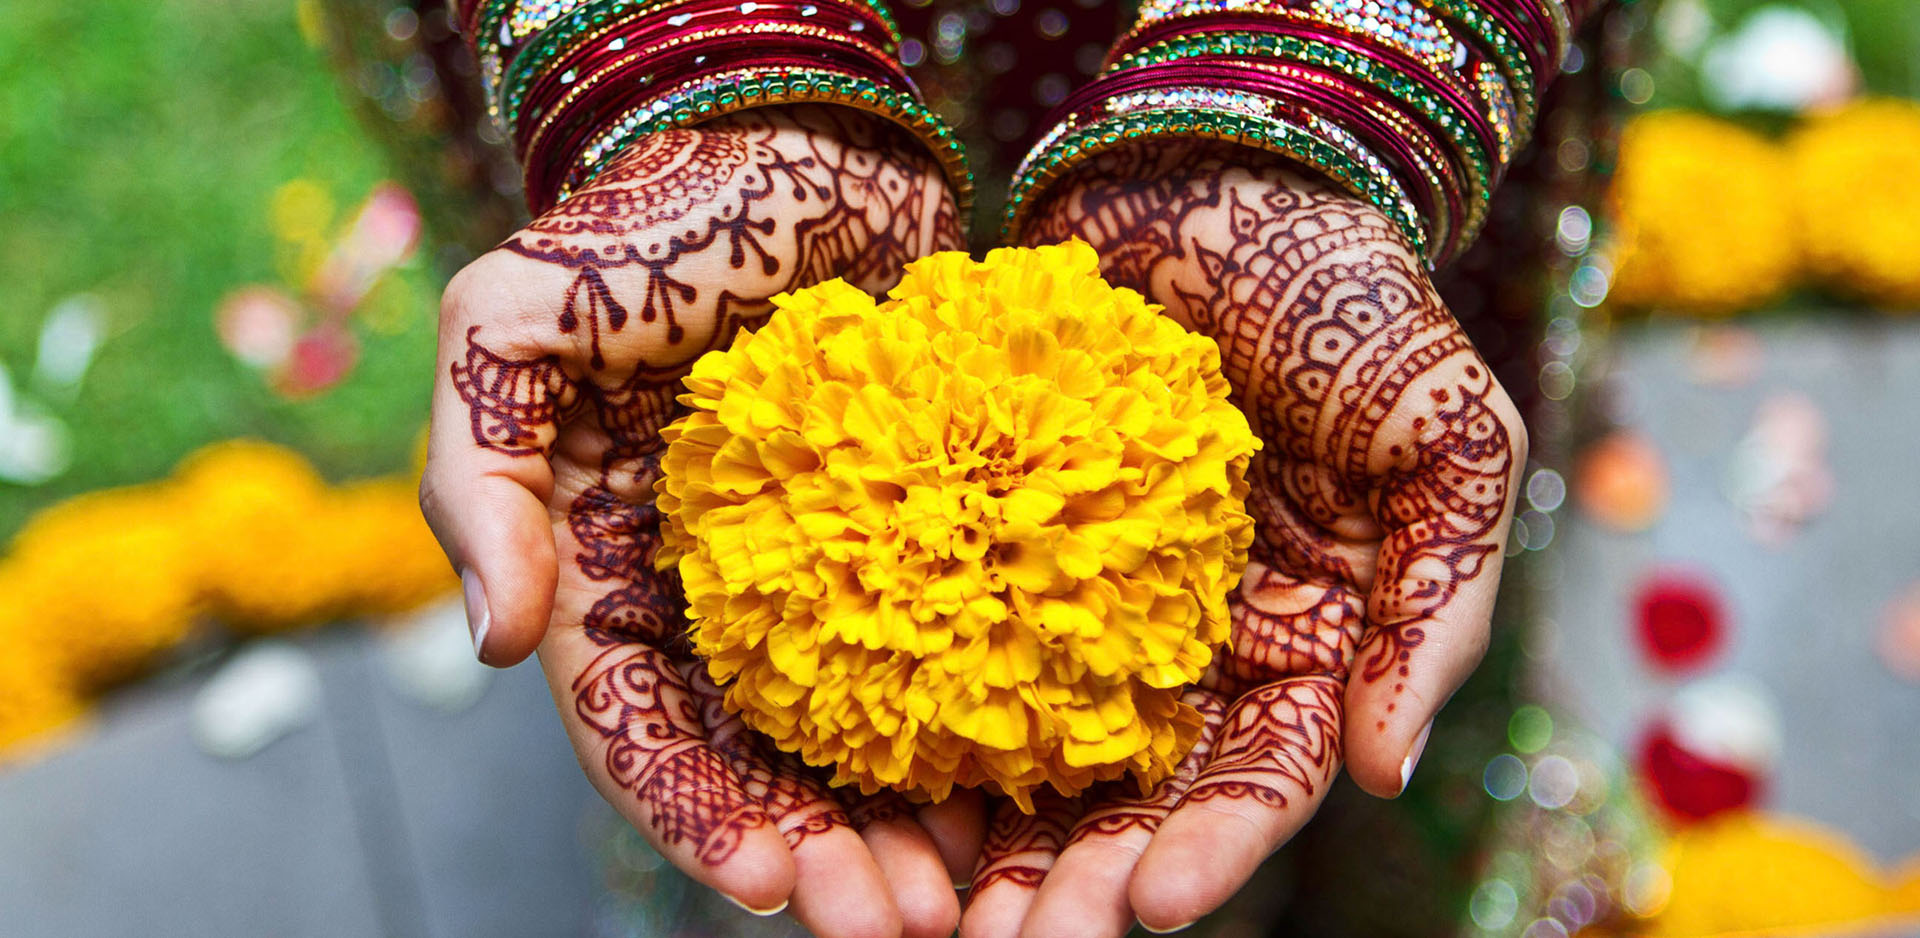 Bride holding yellow carnation flower in hands covered in henna